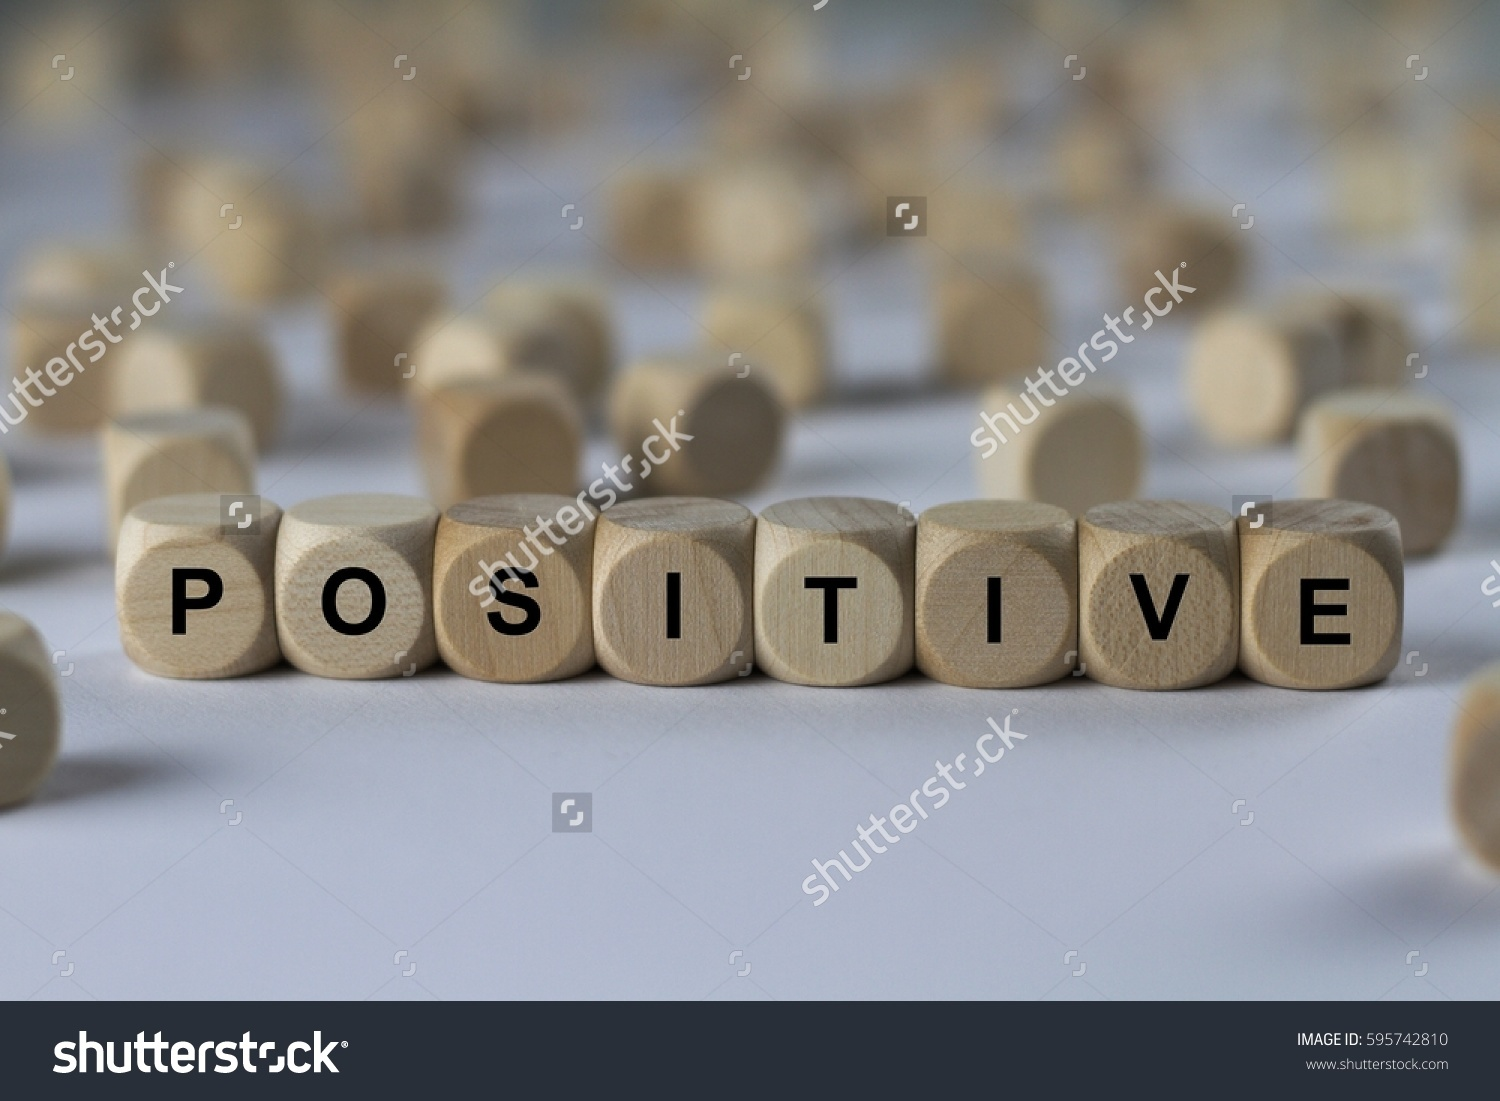 Stock Photo Positive Cube With Letters Sign With Wooden